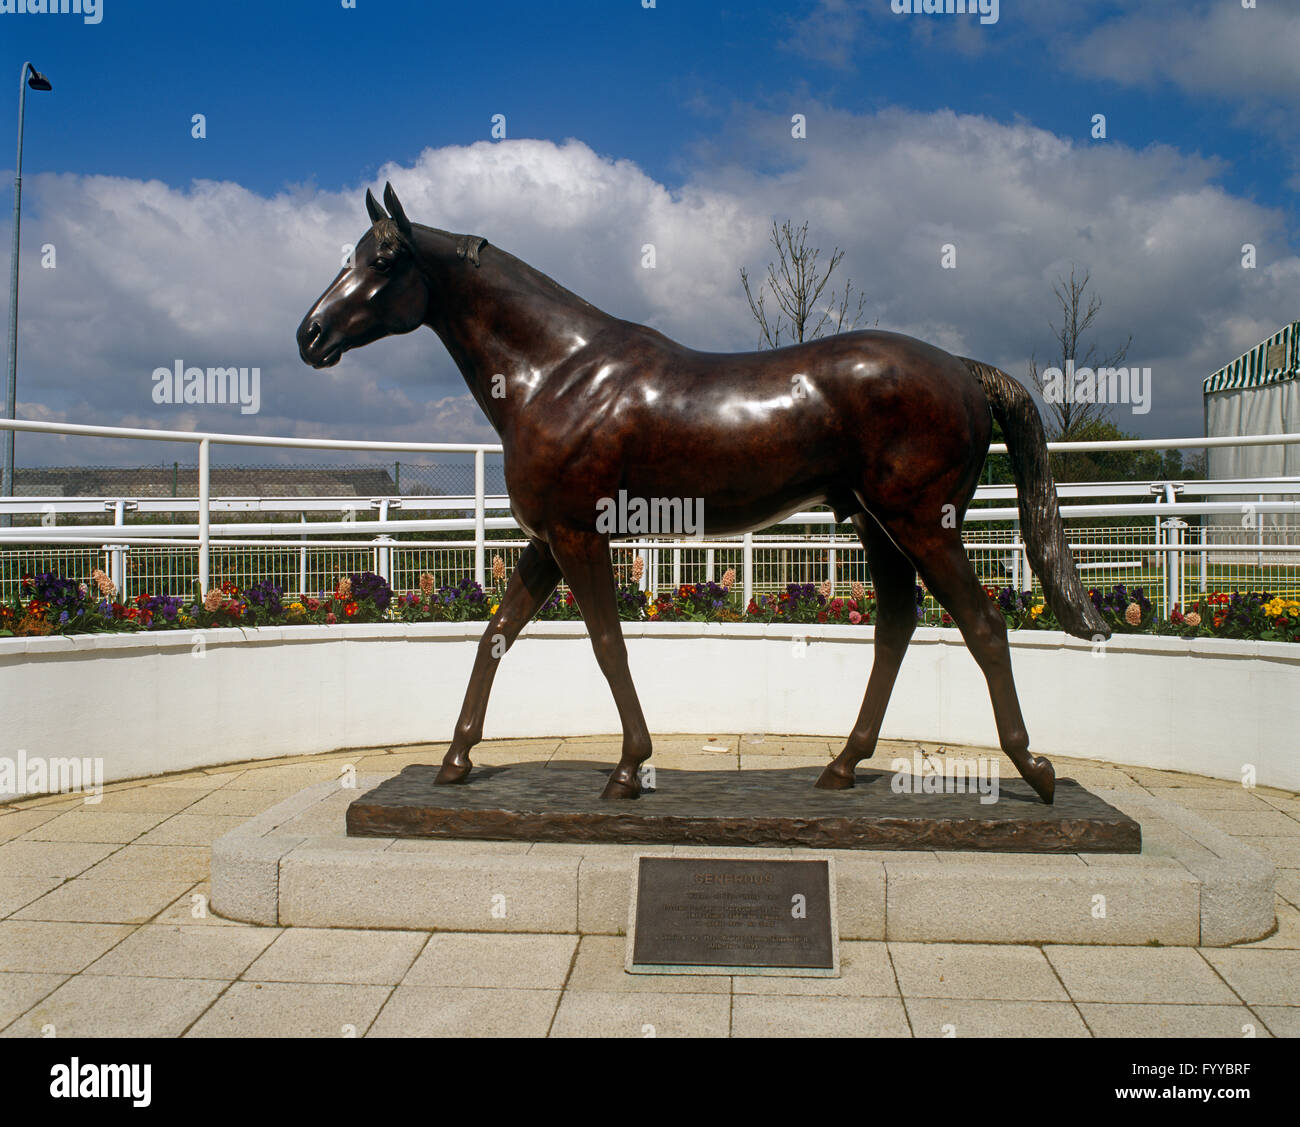 The Generous Race Horse Statue at the Grandstand in Epsom Downs, Surrey, Uk. - Stock Image